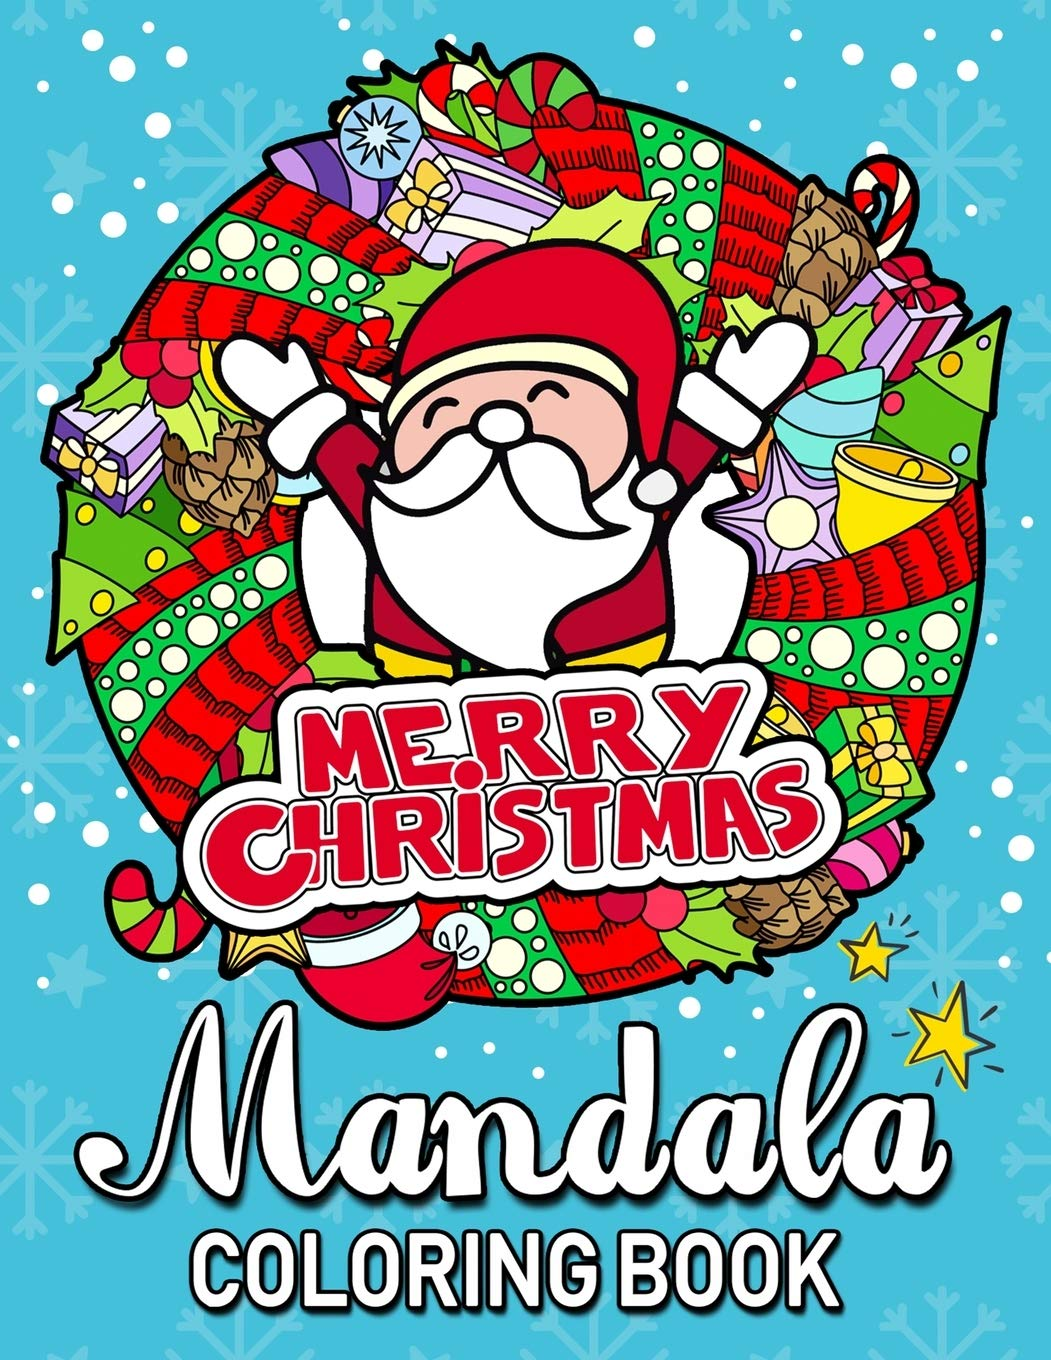 Amazon Com Merry Christmas Mandala Coloring Books An Adults Coloring Pages Easy And Relaxing Design High Quality 9781700264619 Rocket Publishing Books